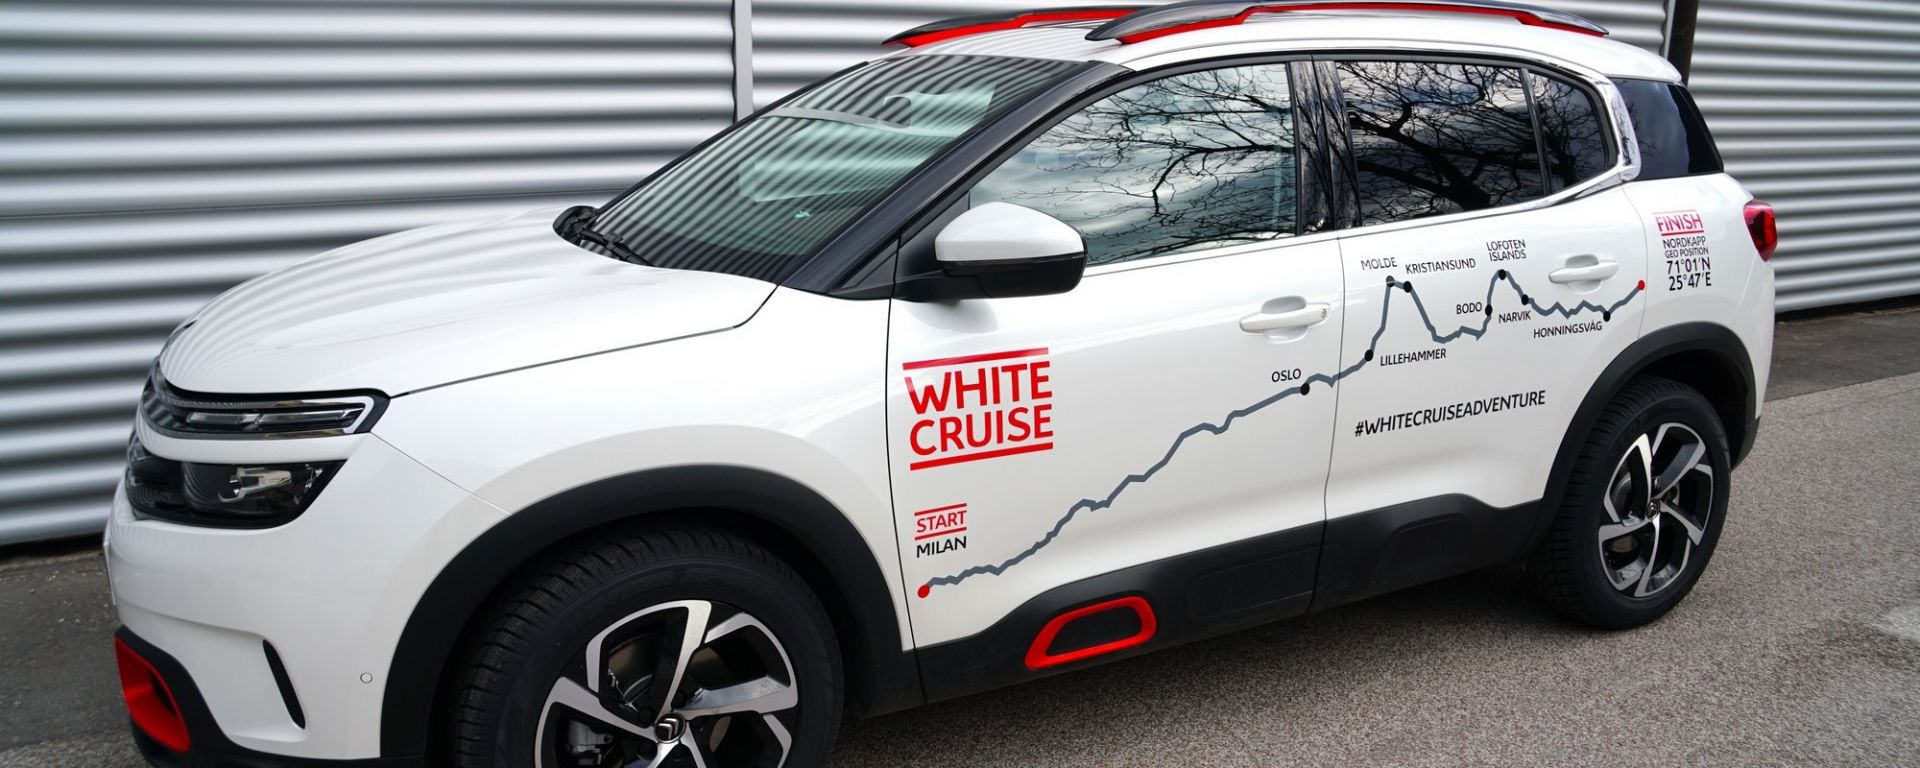 Citroen C5 Aircross 71° N Limited Edition: parte la White Cruise